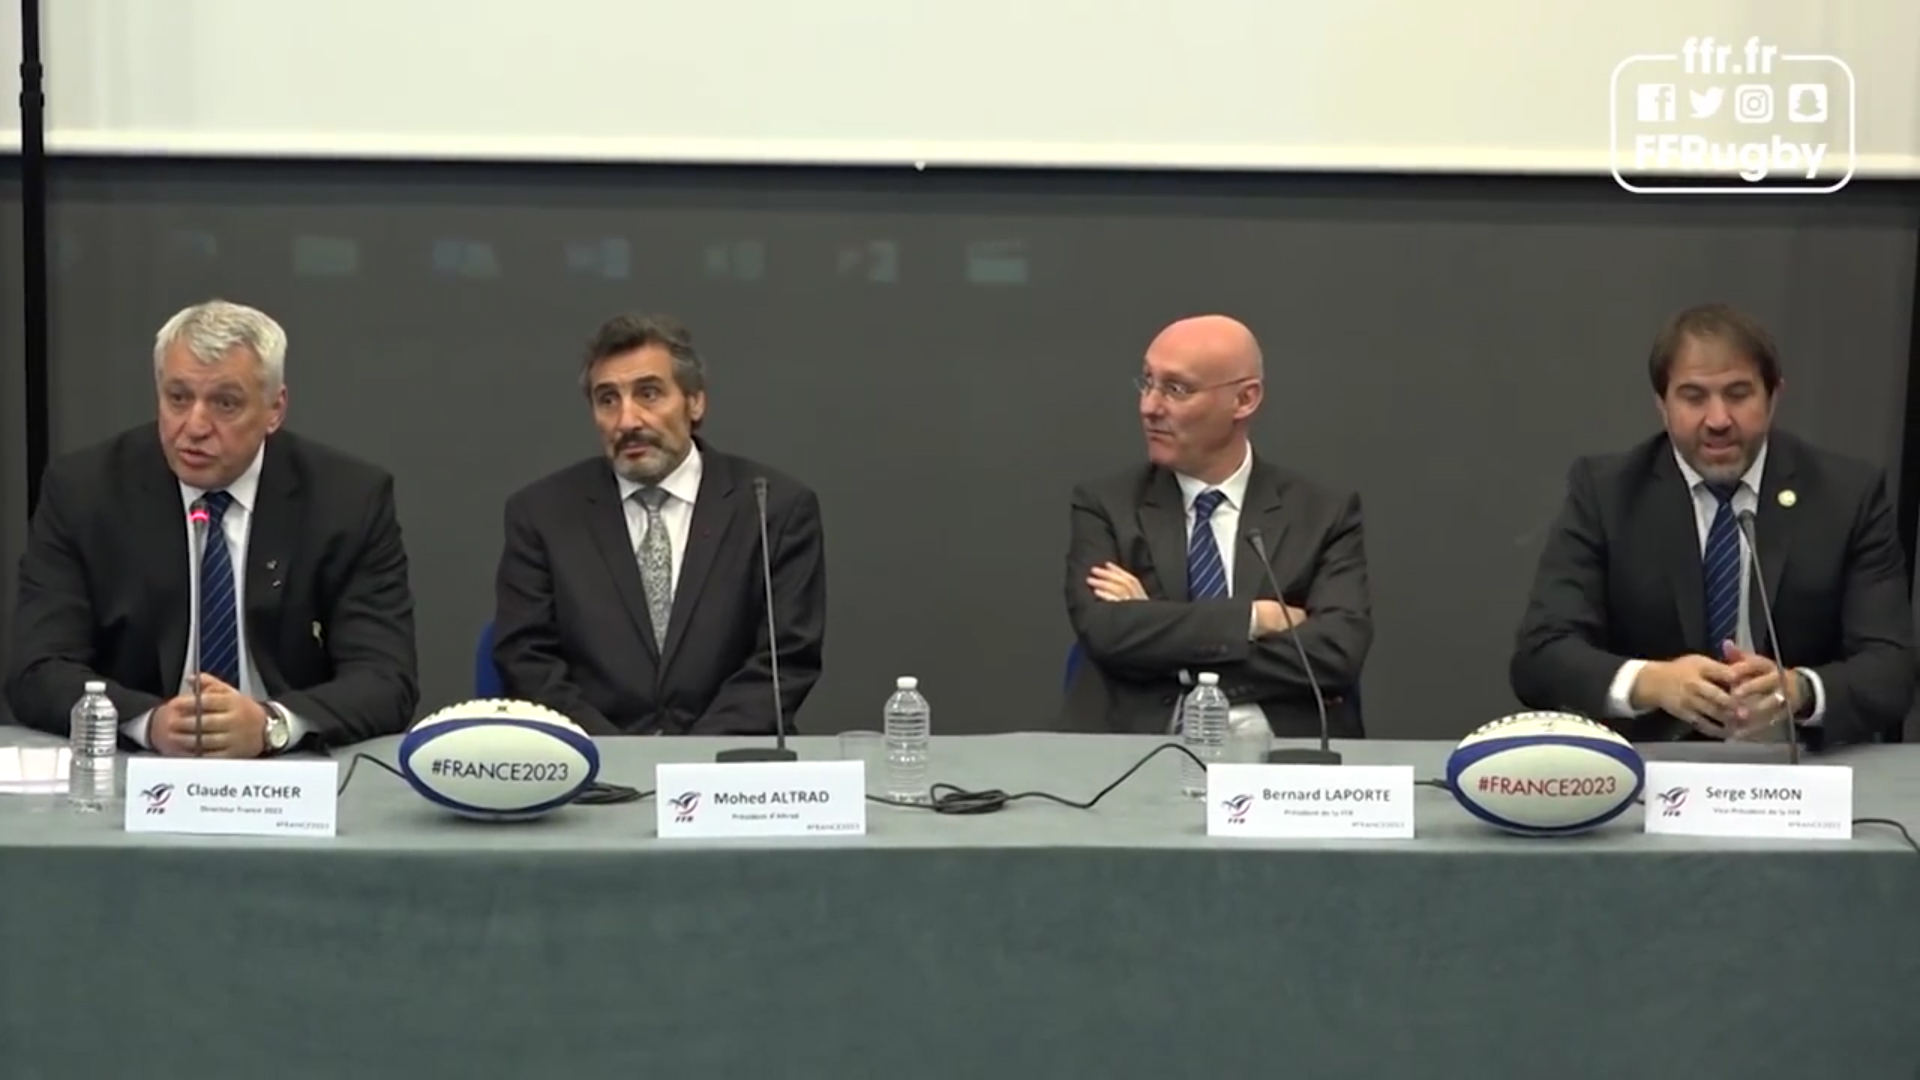 Press Conference - France 2023 - Altrad supports the XV de France and the World Cup in France - 2017